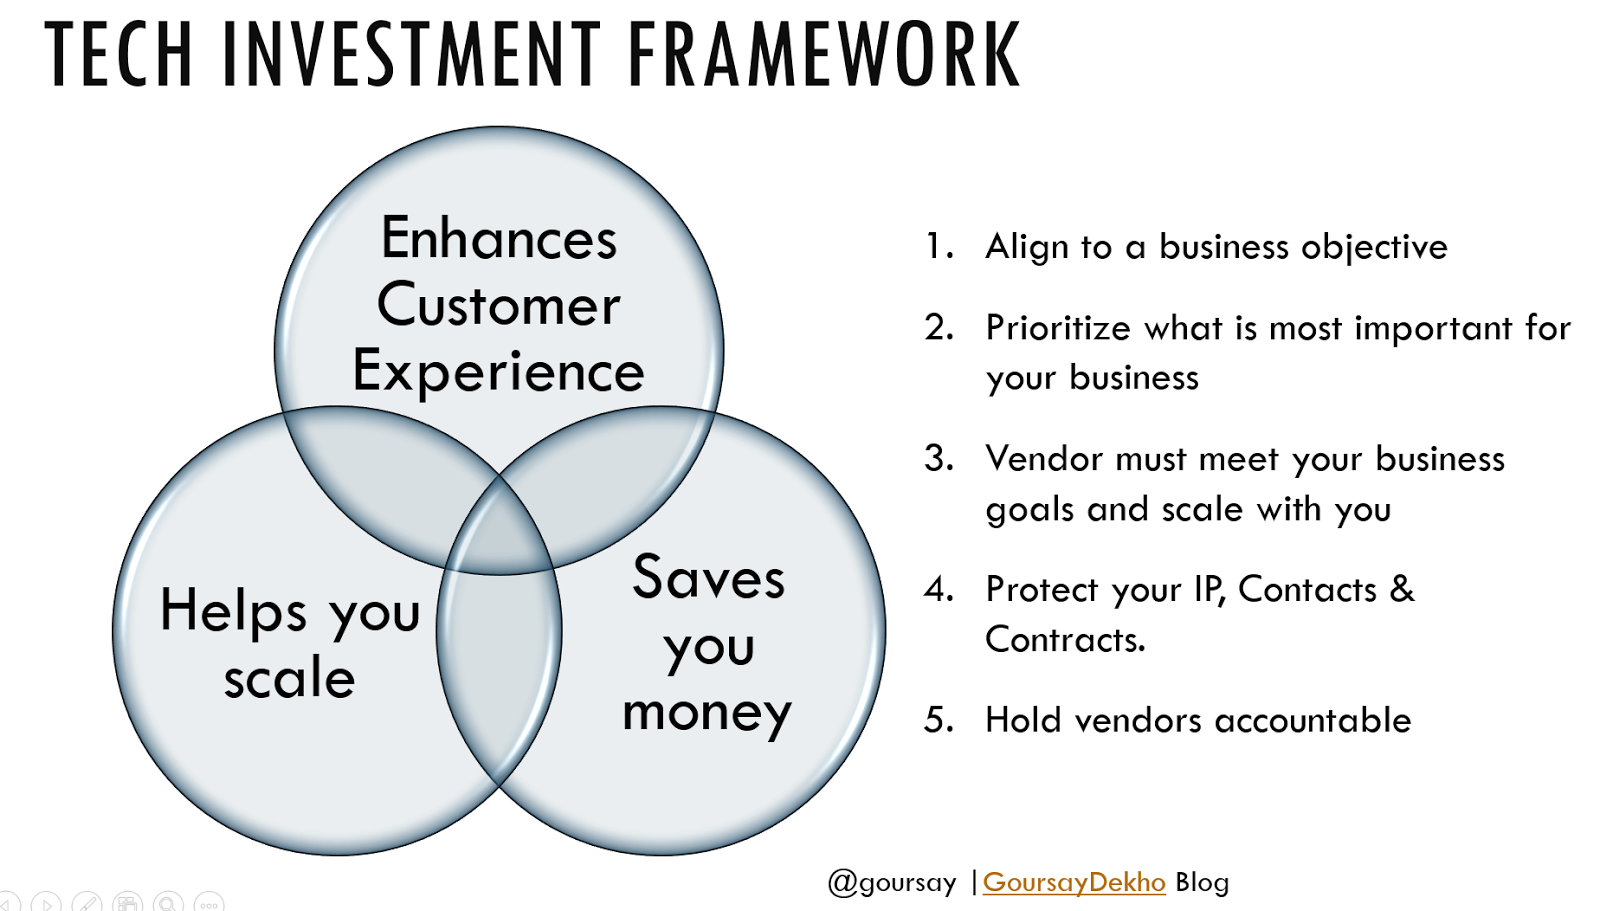 a simple framework for technology investments